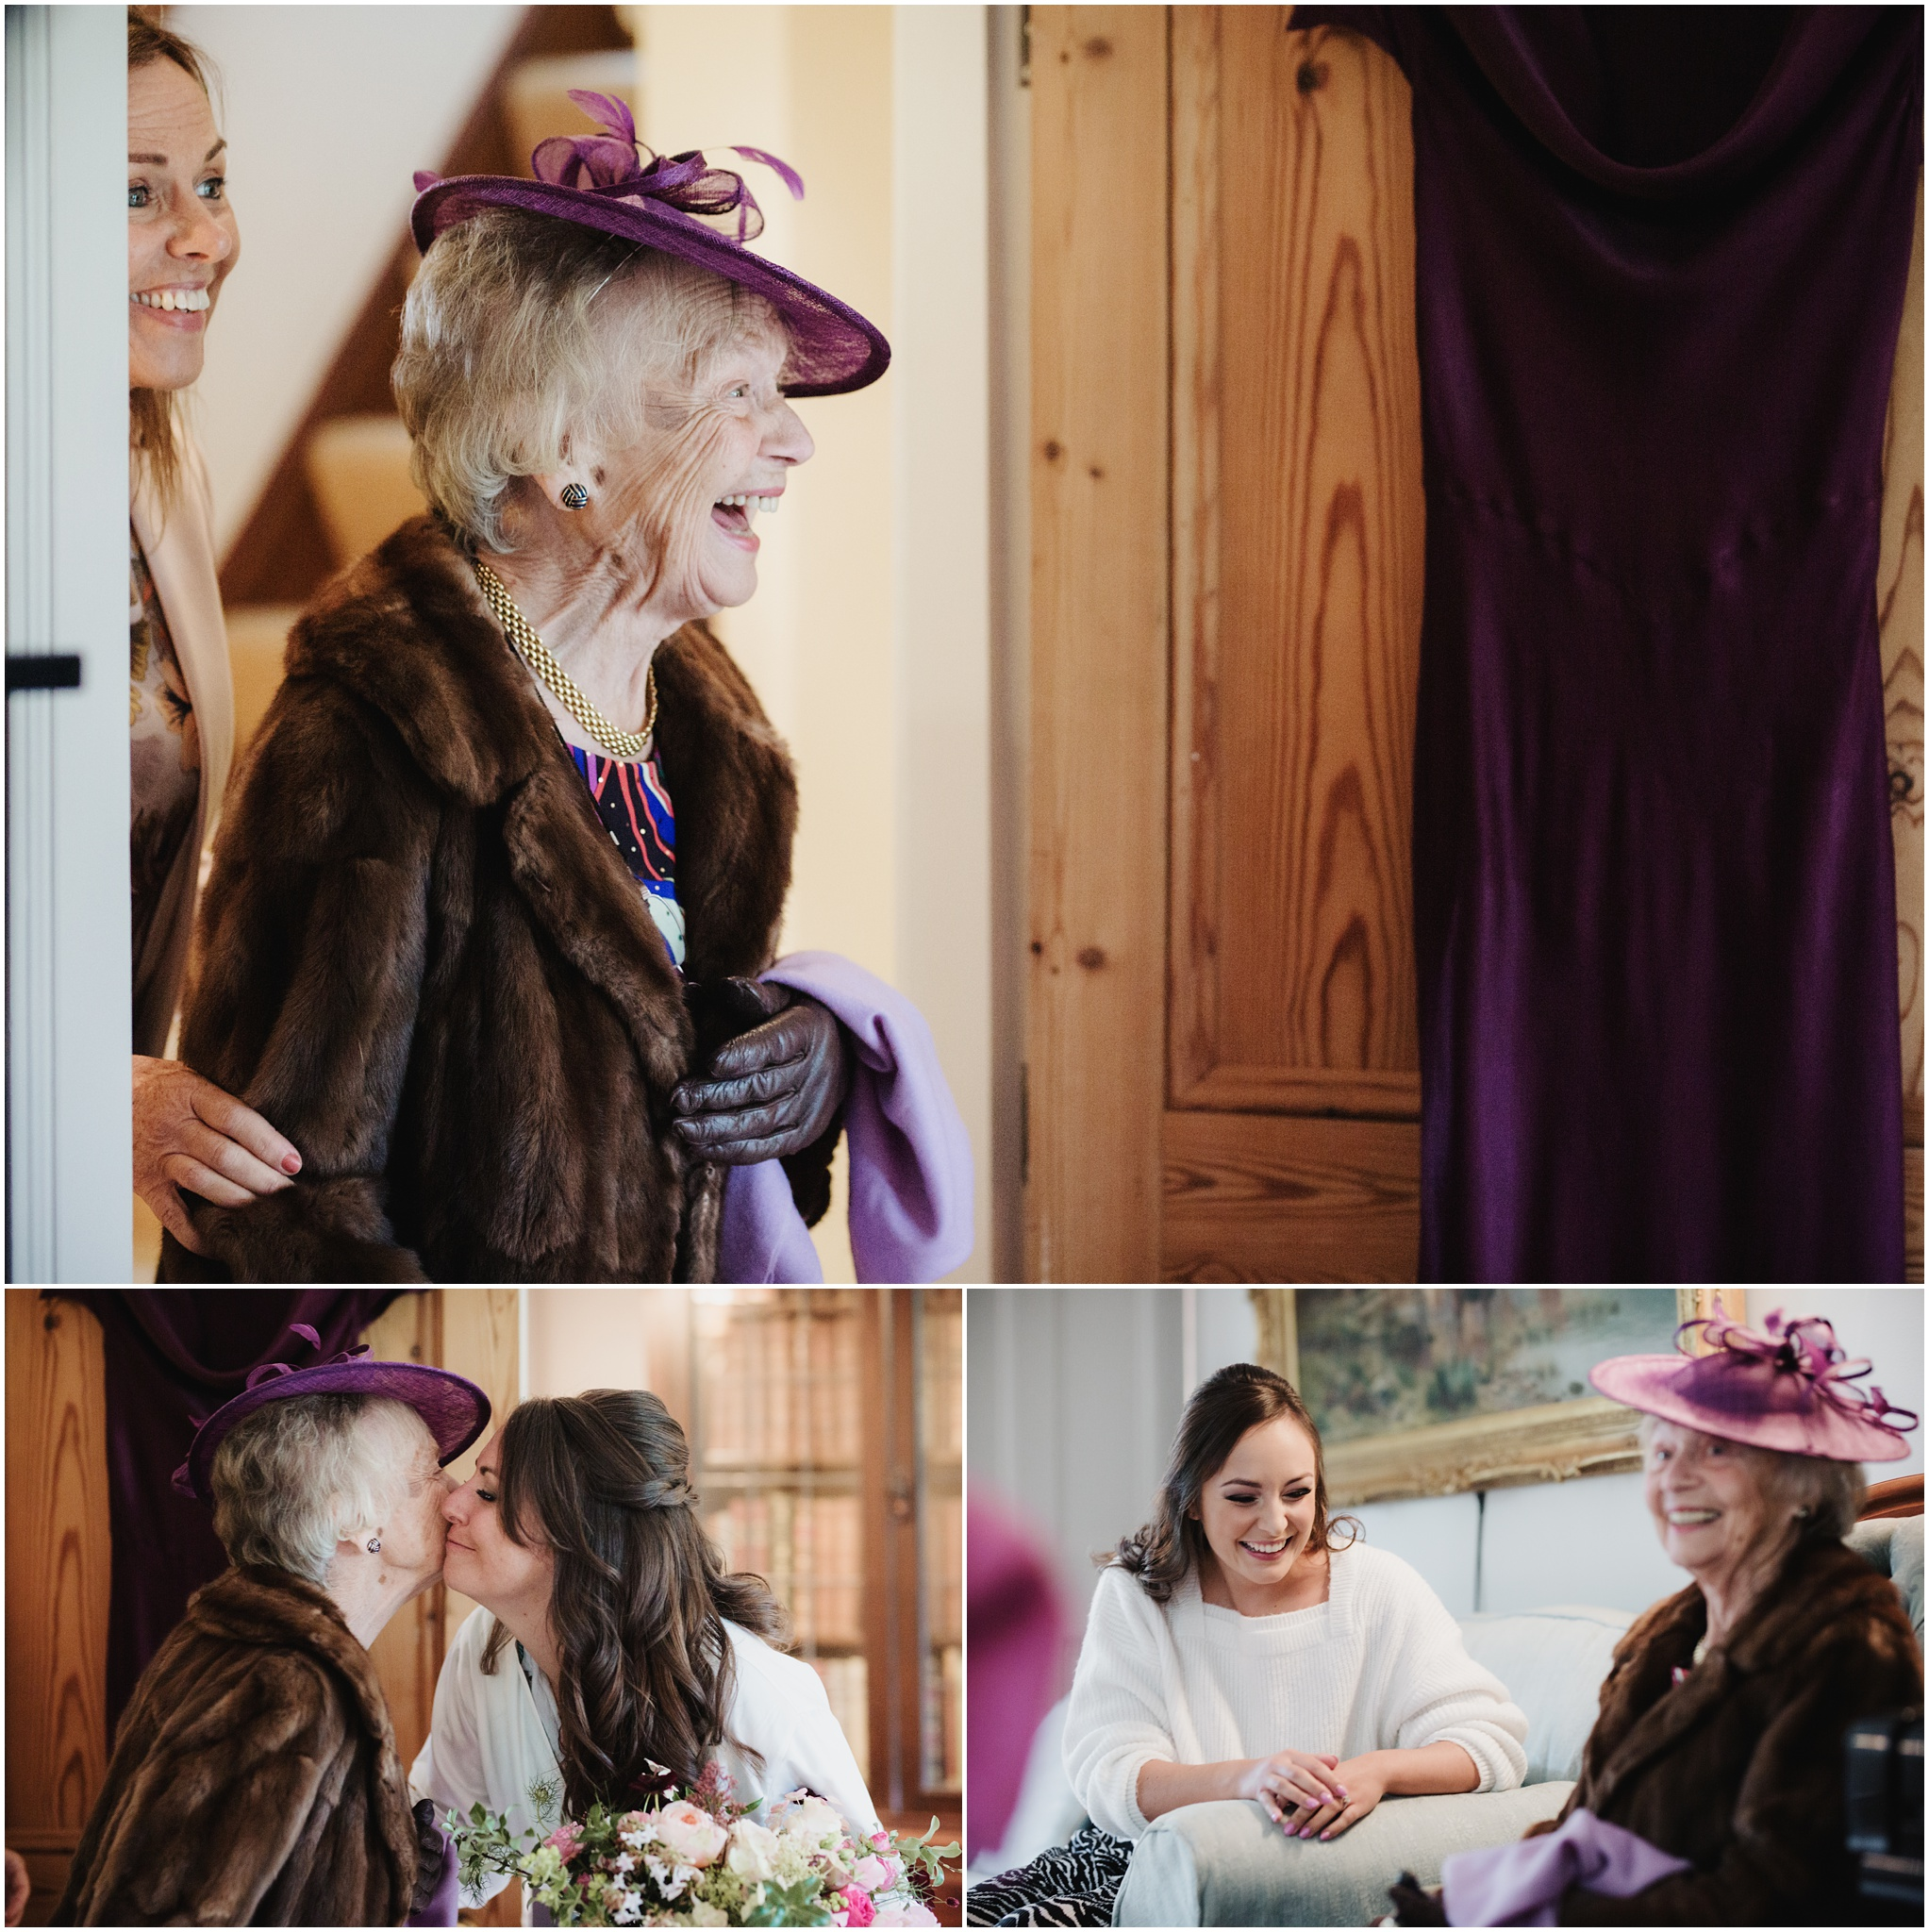 Brides nan walks into the room and greets grand daughters